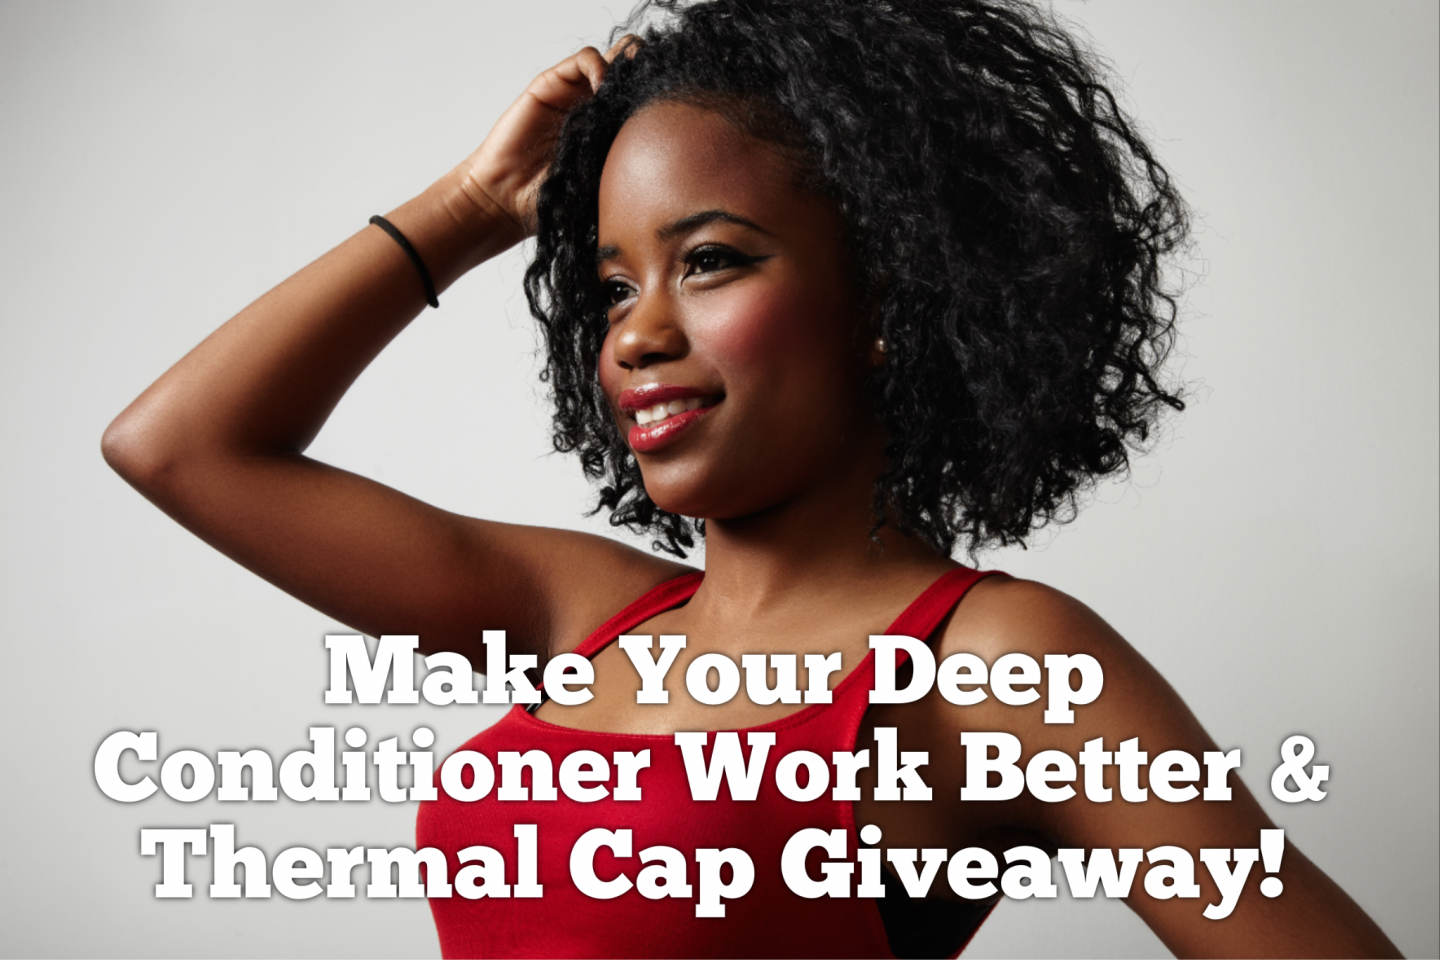 cd4599b60310c Deep Conditioner Work Better   Thermal Cap Giveaway!